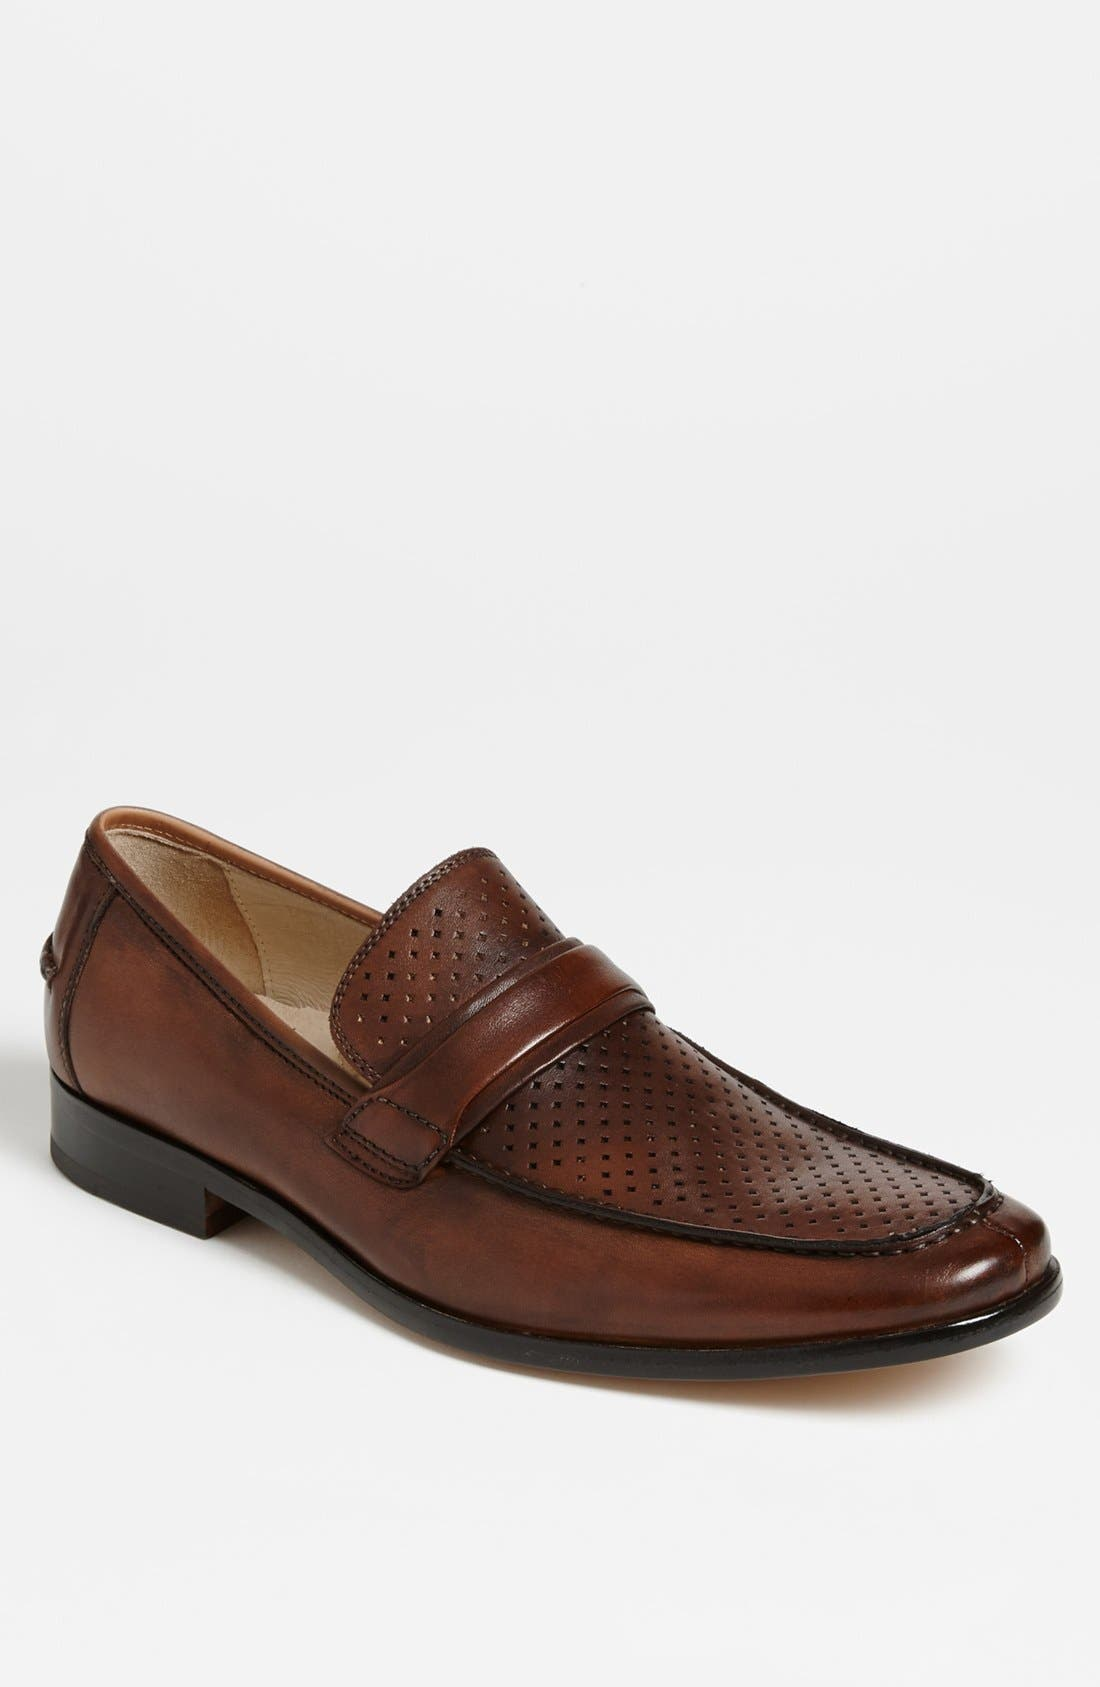 Alternate Image 1 Selected - Kenneth Cole New York 'Bigger Than Me' Loafer